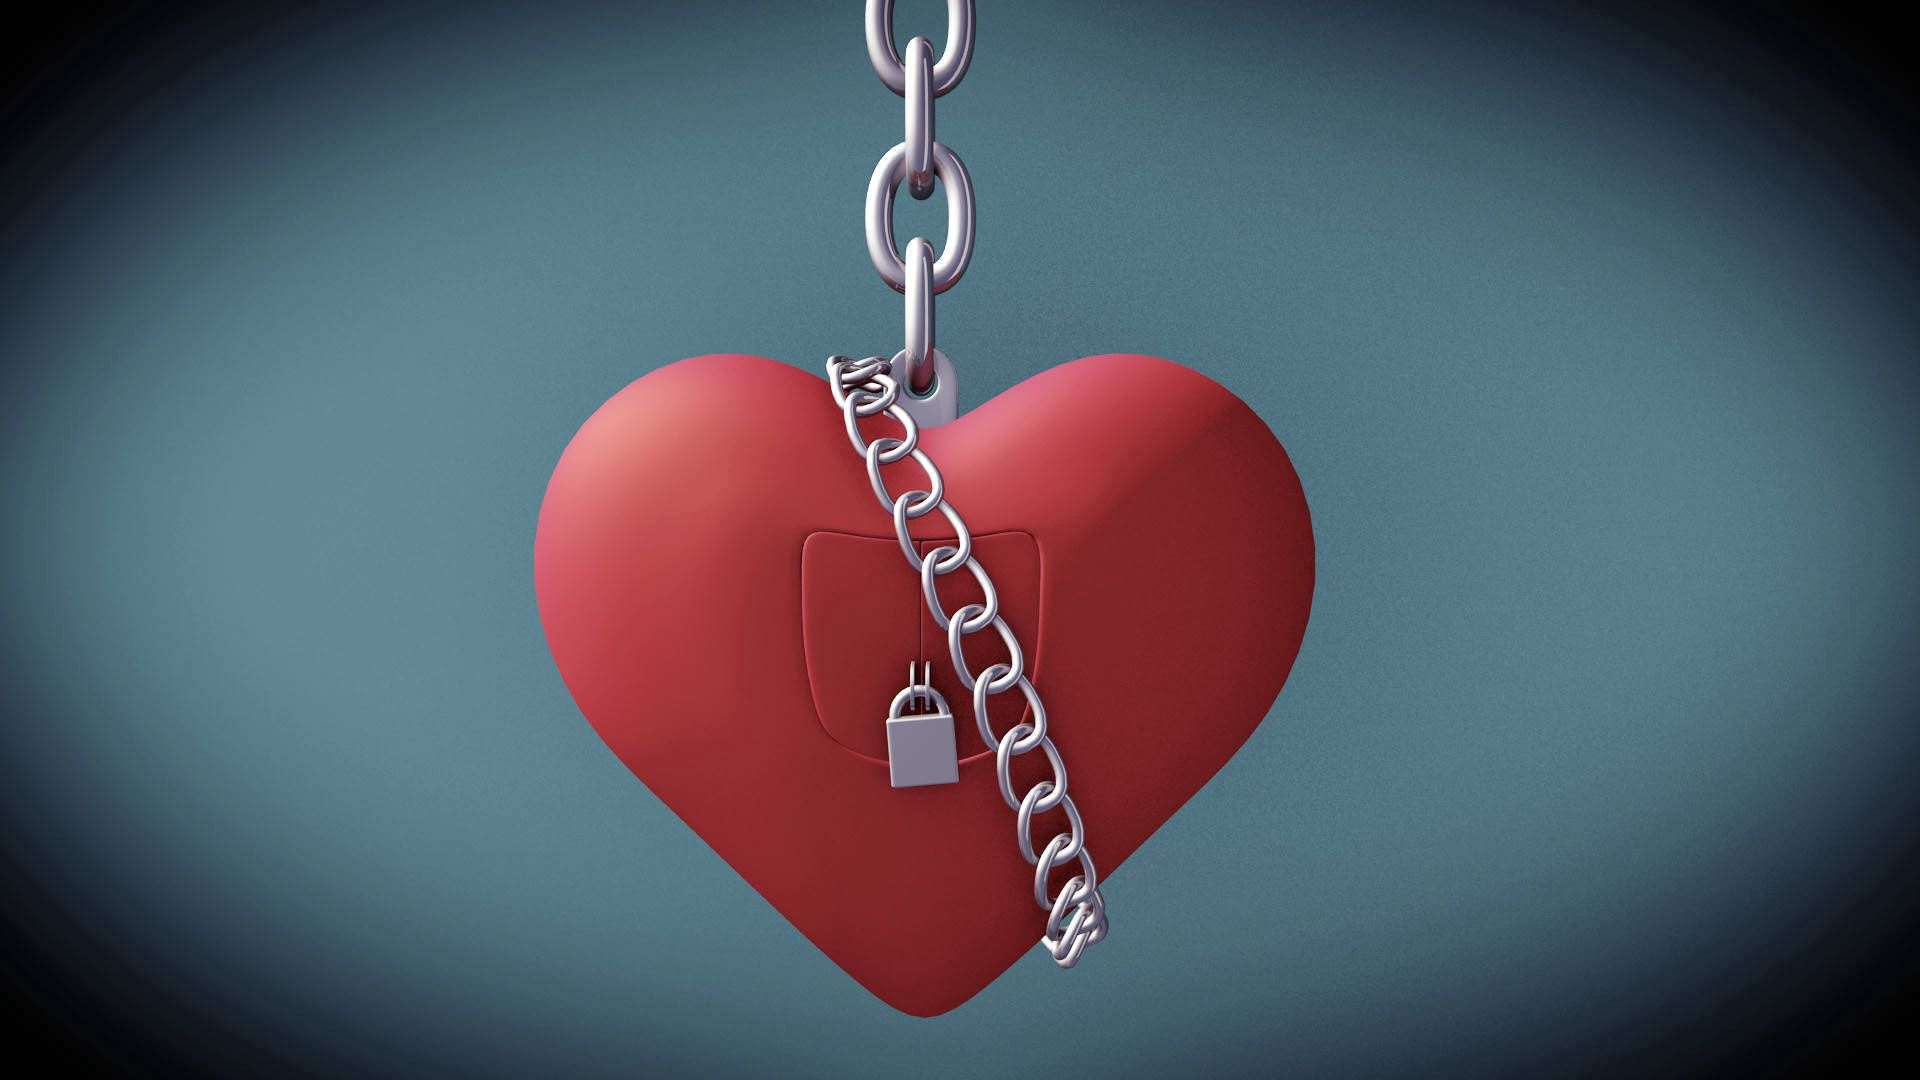 134608 download wallpaper Holidays, Valentine's Day, St. Valentine's Day, Heart, Love, Lock, Chain screensavers and pictures for free